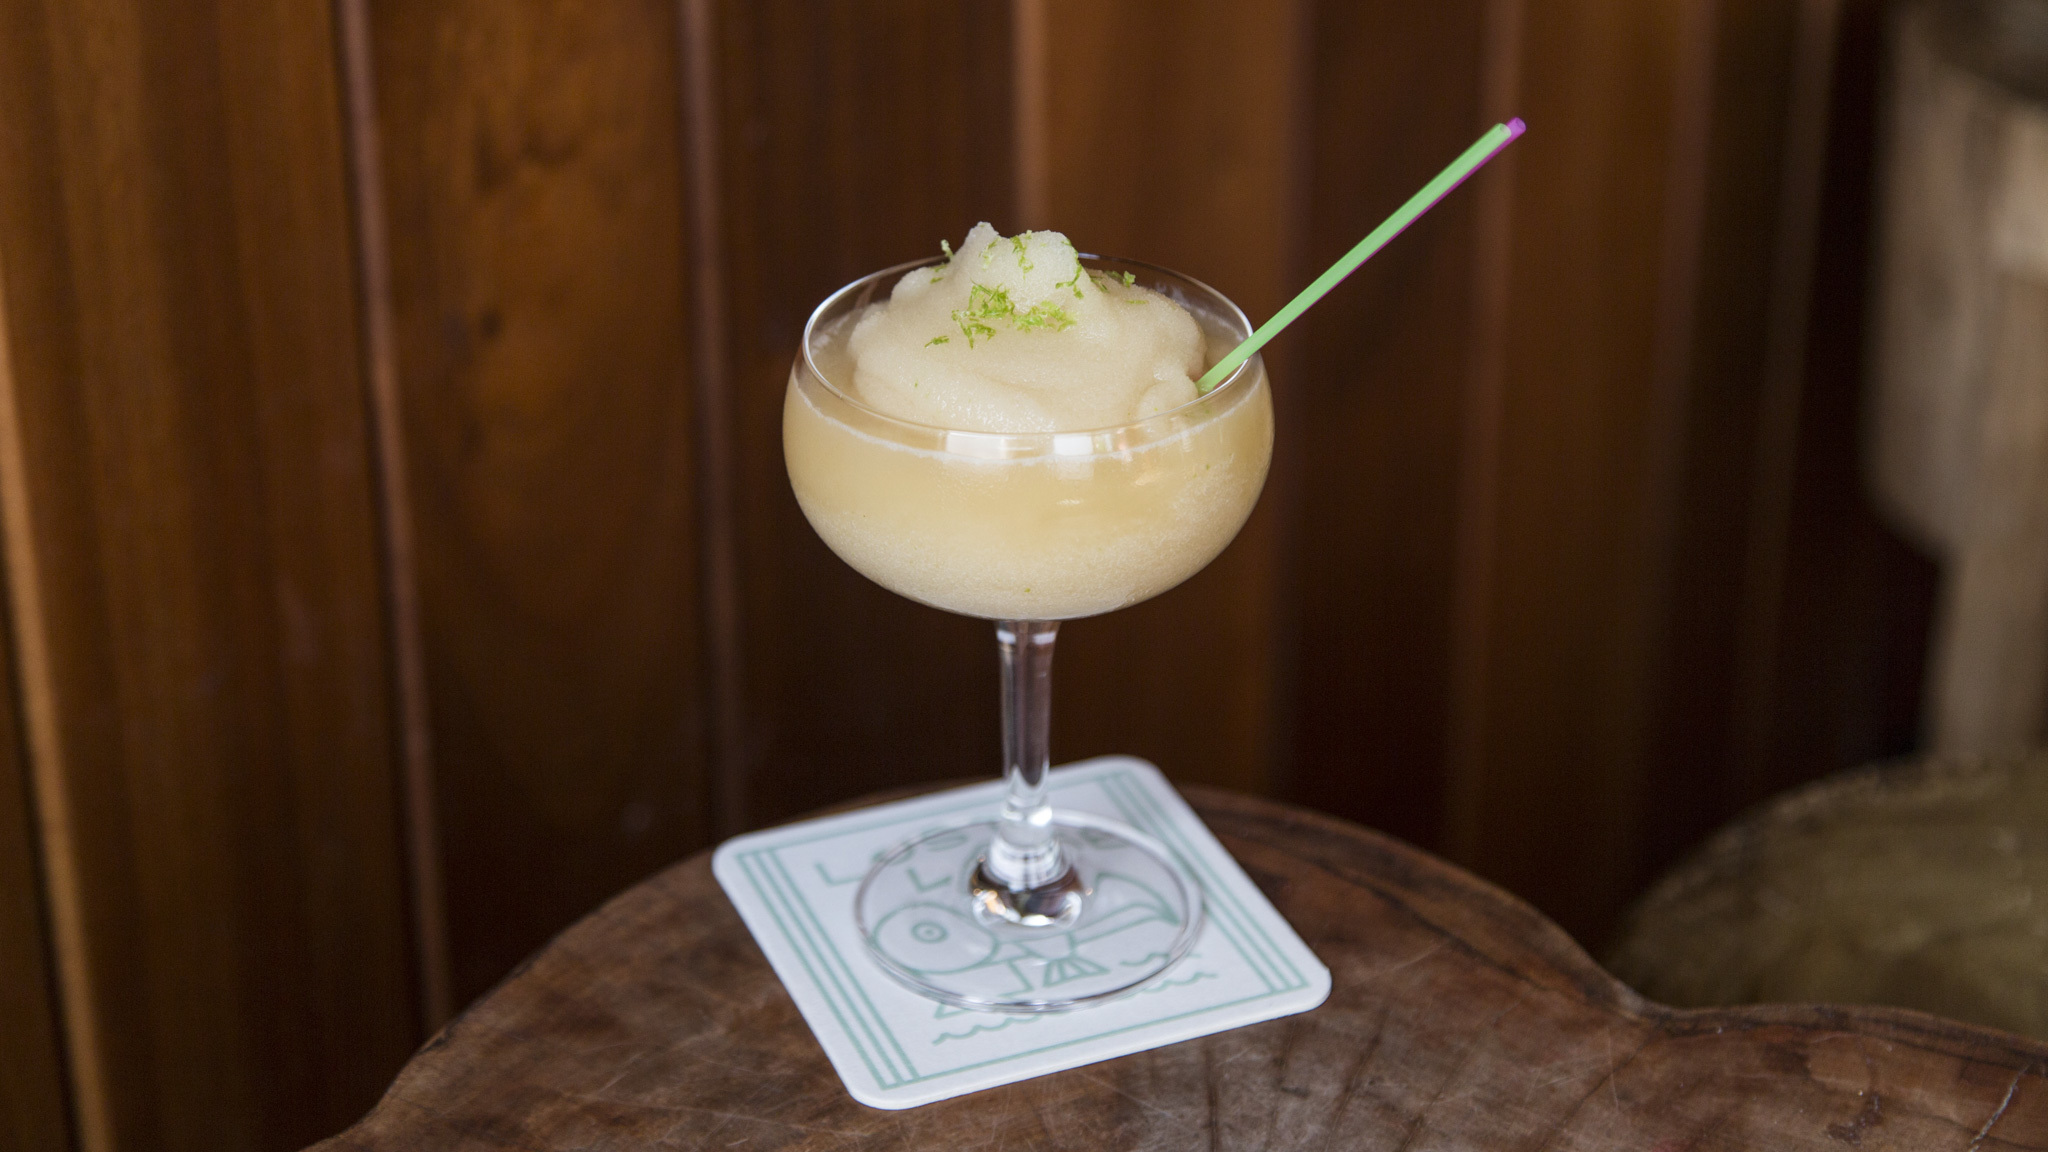 We've collaborated with Lost Lake on a special new cocktail